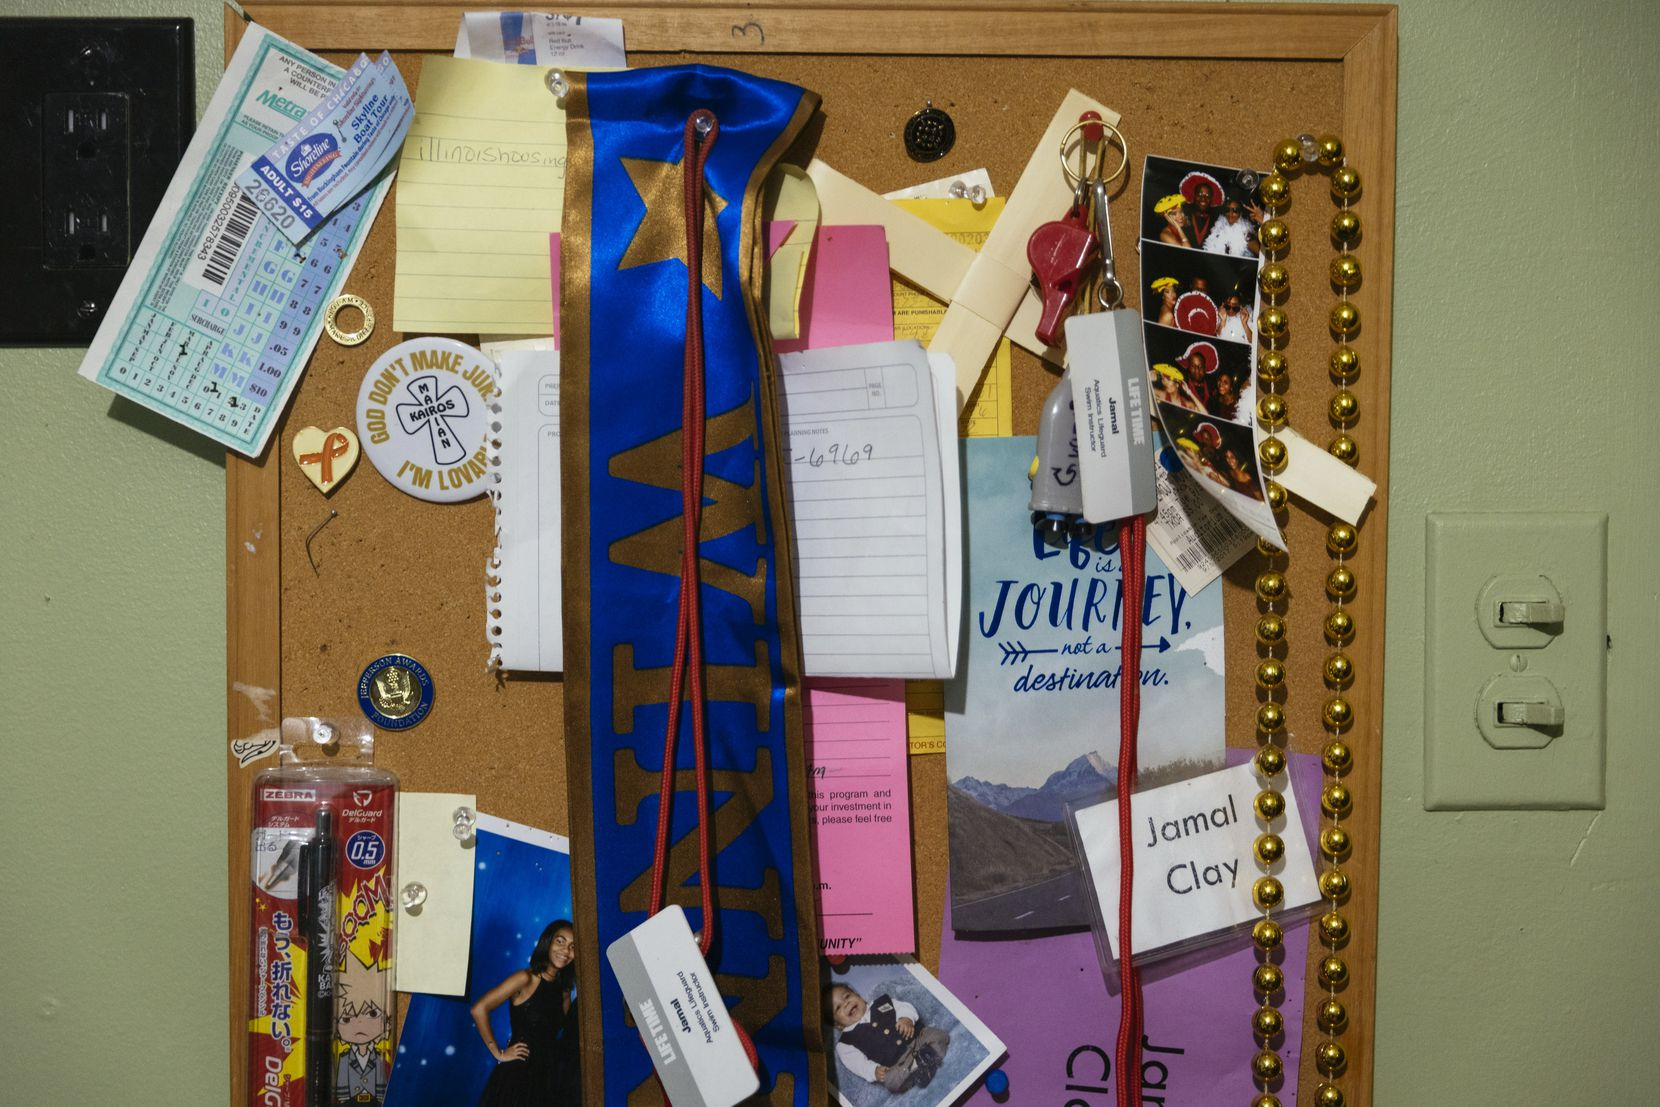 Mementos are displayed on a bulletin board in Jamal Clay s room on July 9, 2021, in Olympia Fields, Illinois. Clay died by suicide in May 2020. Research shows that while suicide rates have dropped for white Americans in recent years, it is a growing crisis for communities of color.